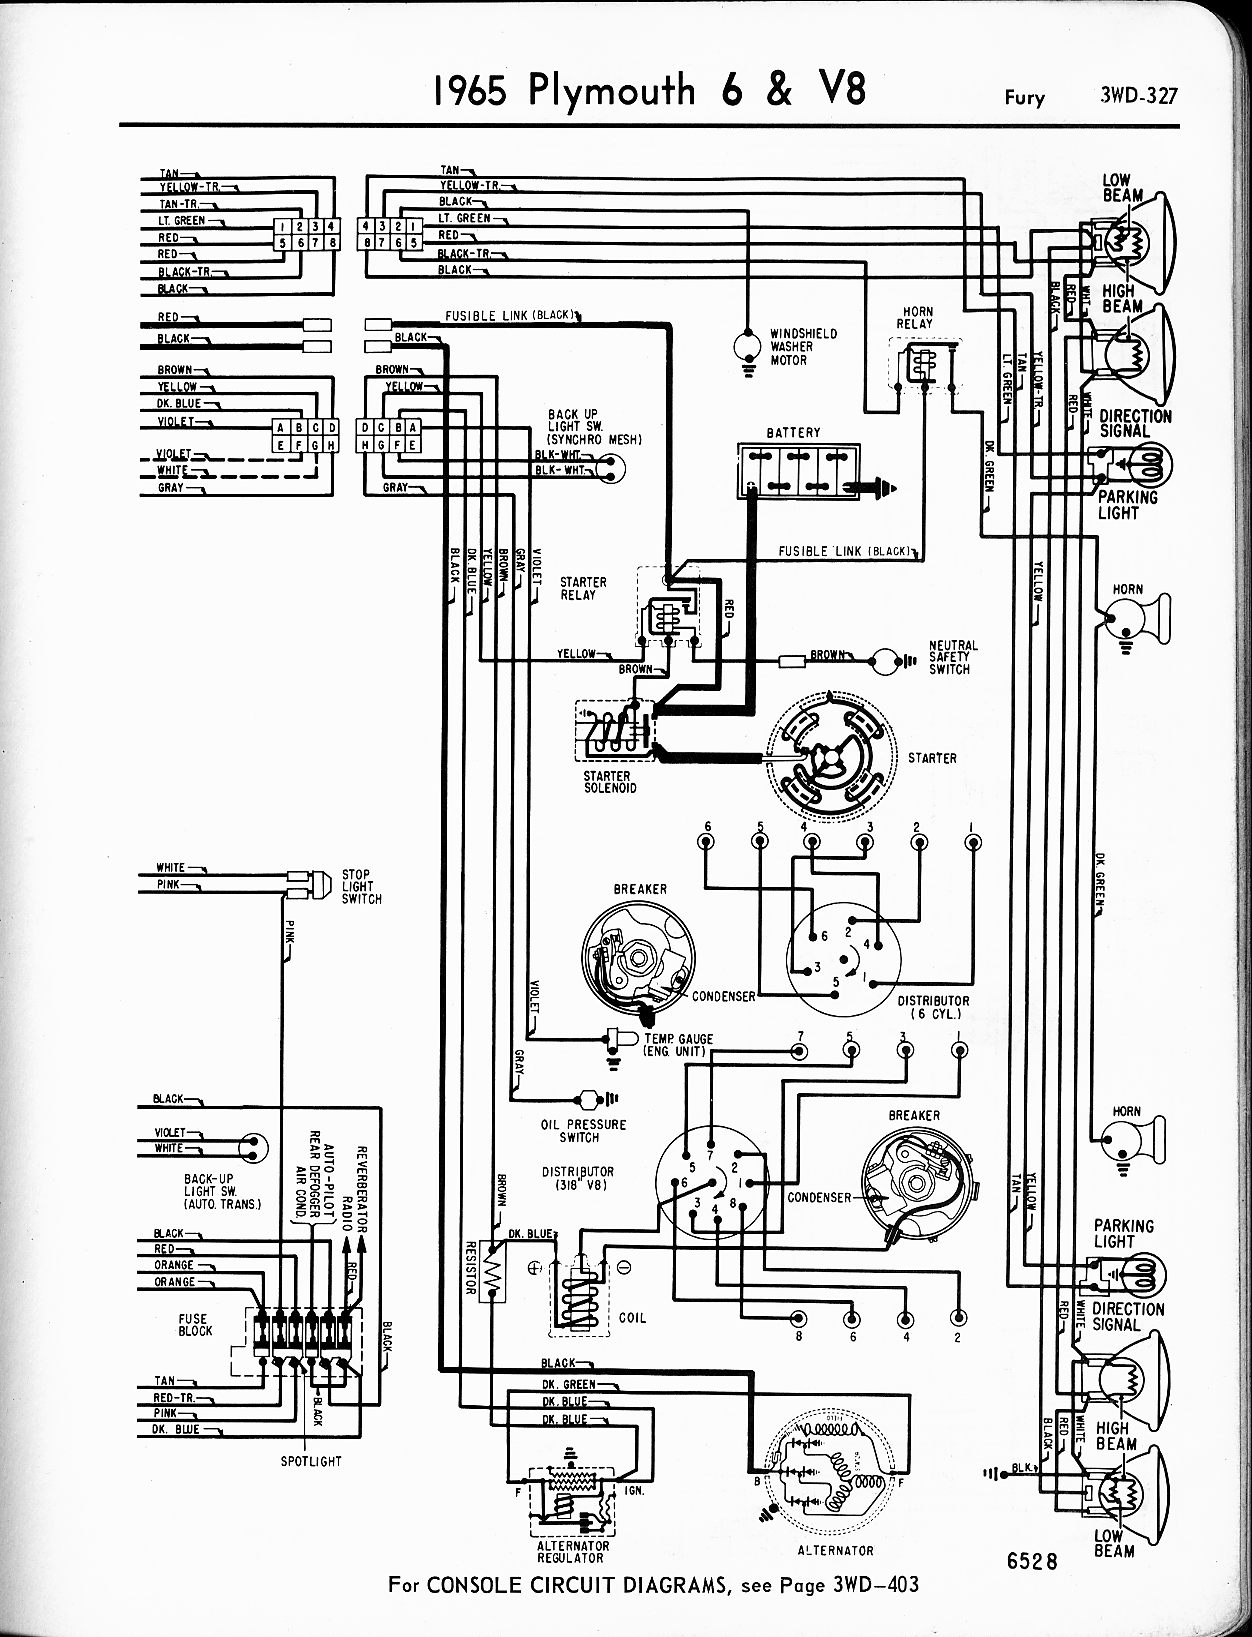 Ford Power Seat Wiring Diagram Wirning Diagrams additionally 7w4qm Ford Lariat Lost Carat Diamond Ring Dash Ac likewise Schematics a moreover Ford Anglia 1953 57 Wiring Diagram as well Flathead drawings electrical. on 1950 chrysler wiring diagram